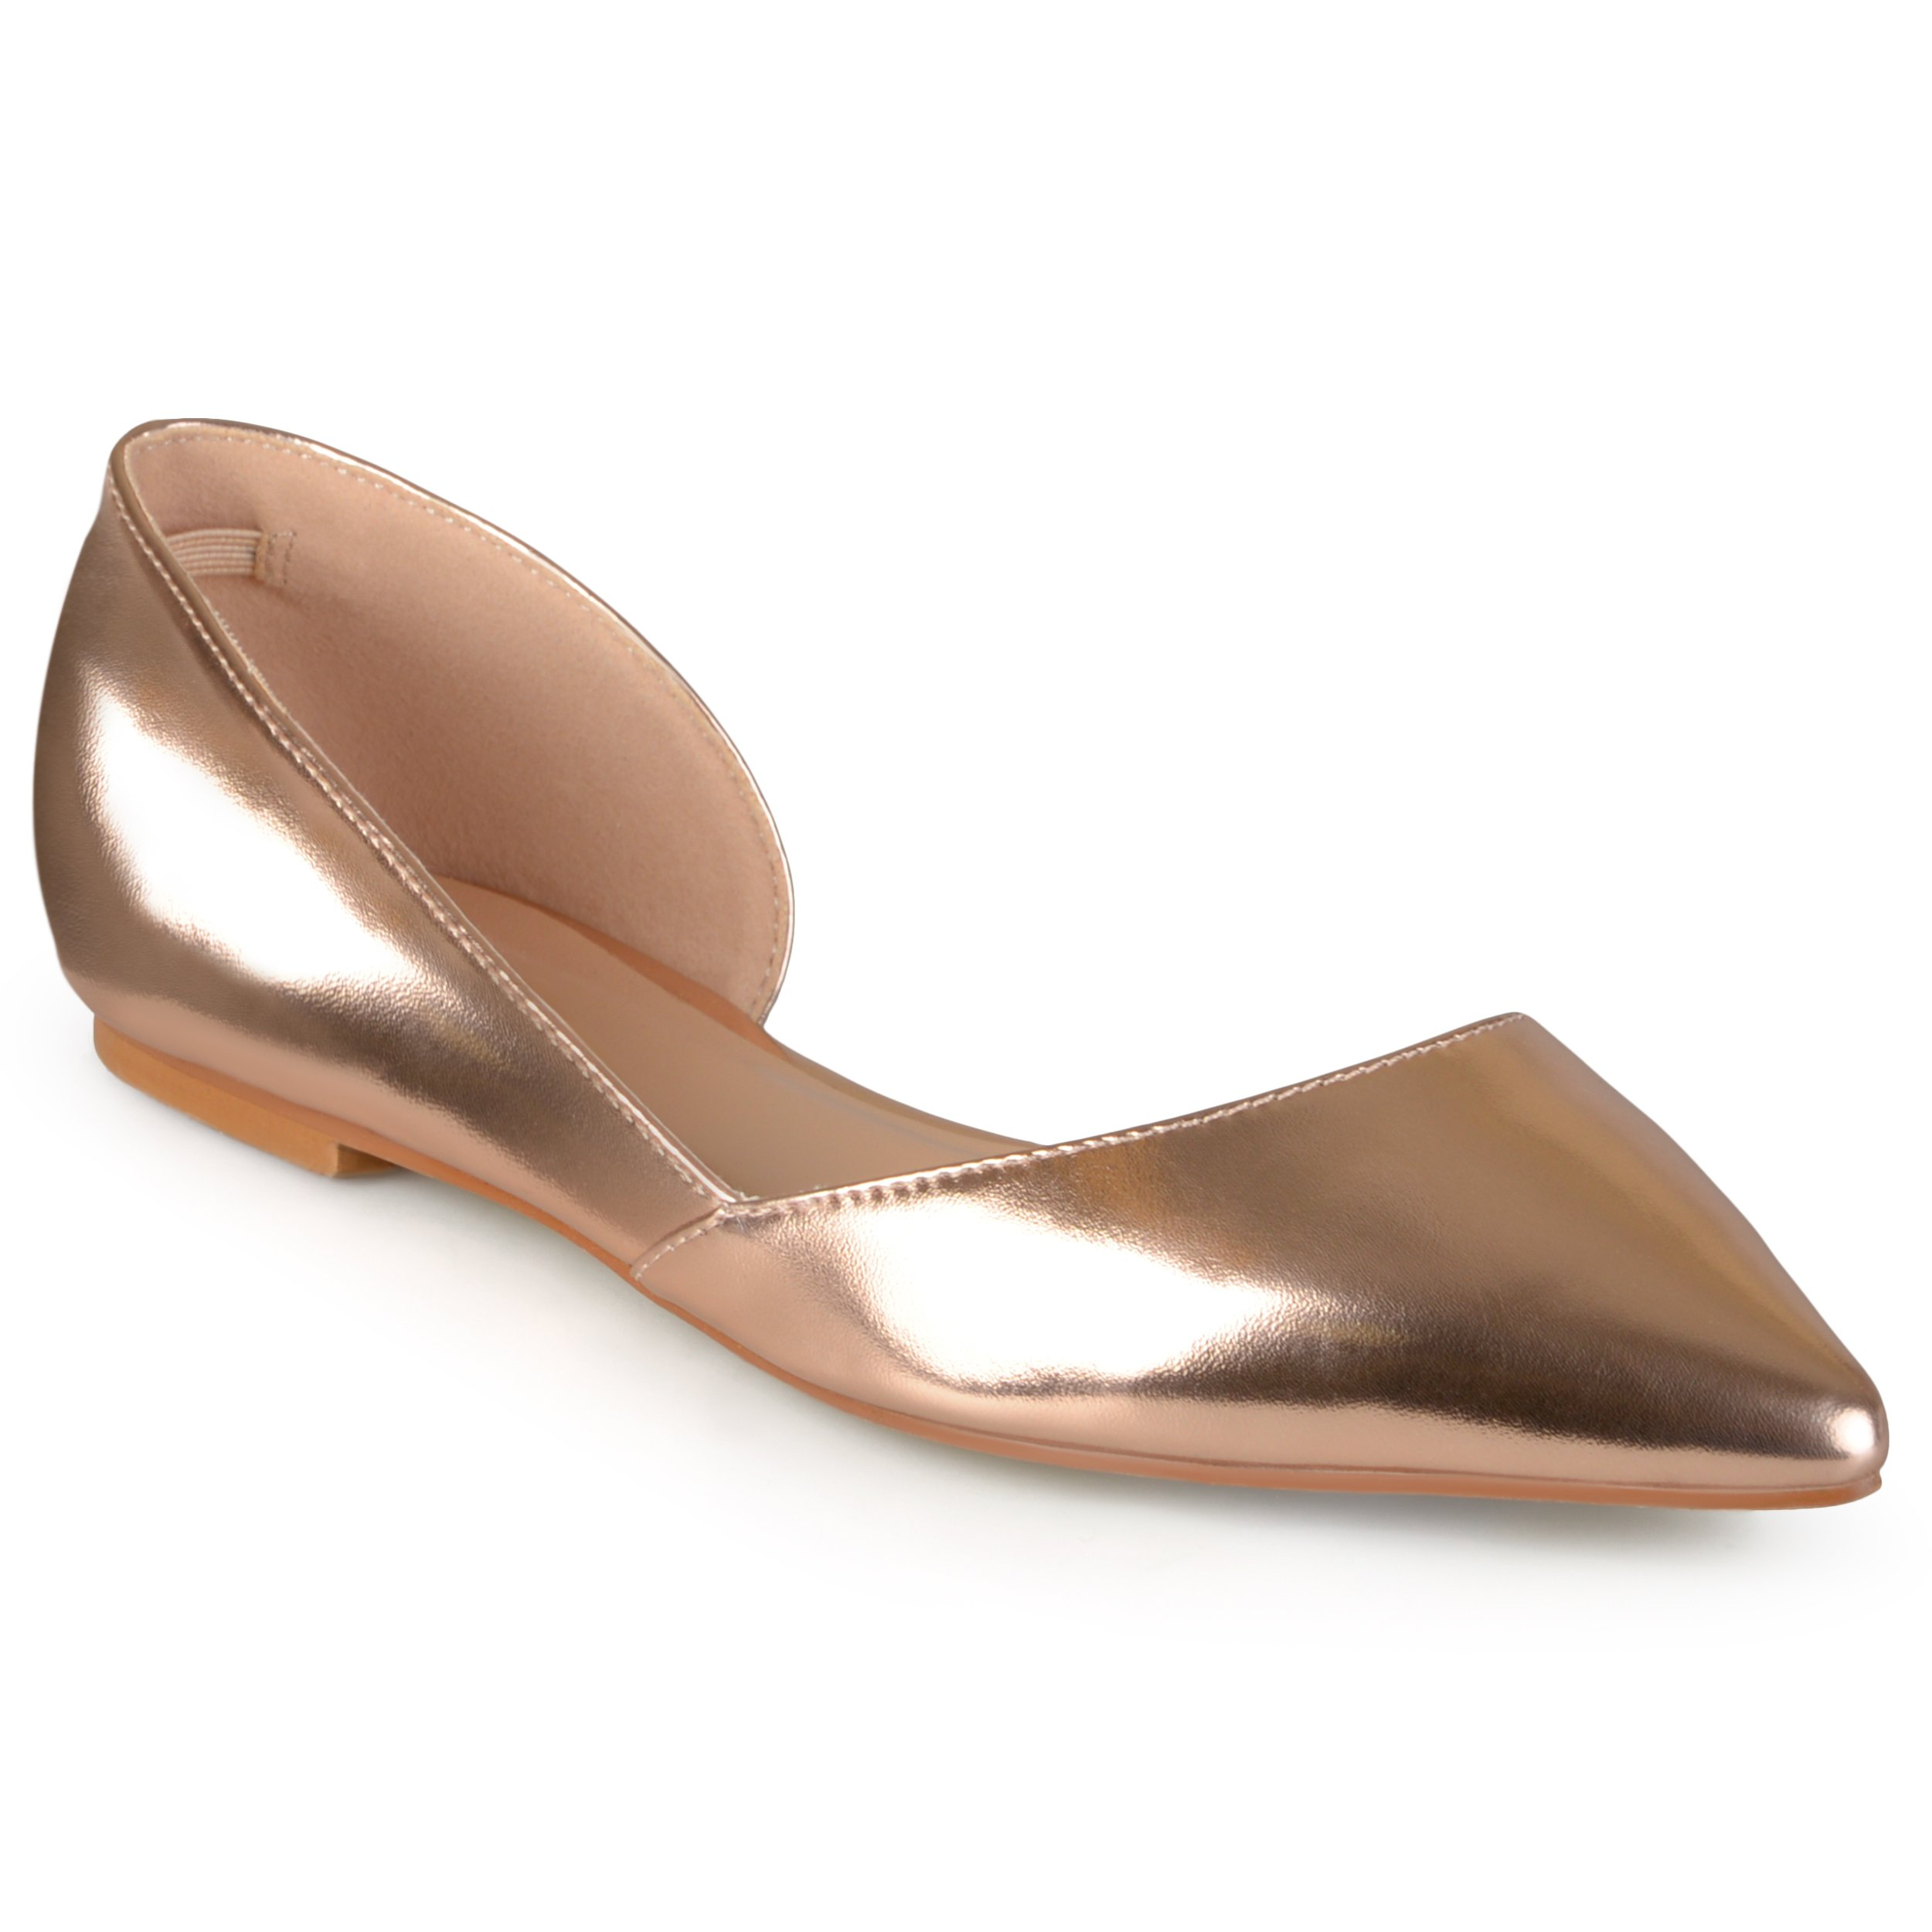 Journee Collection Womens Pointed Toe Cut-Out Flats Rose Gold, 8 Regular US